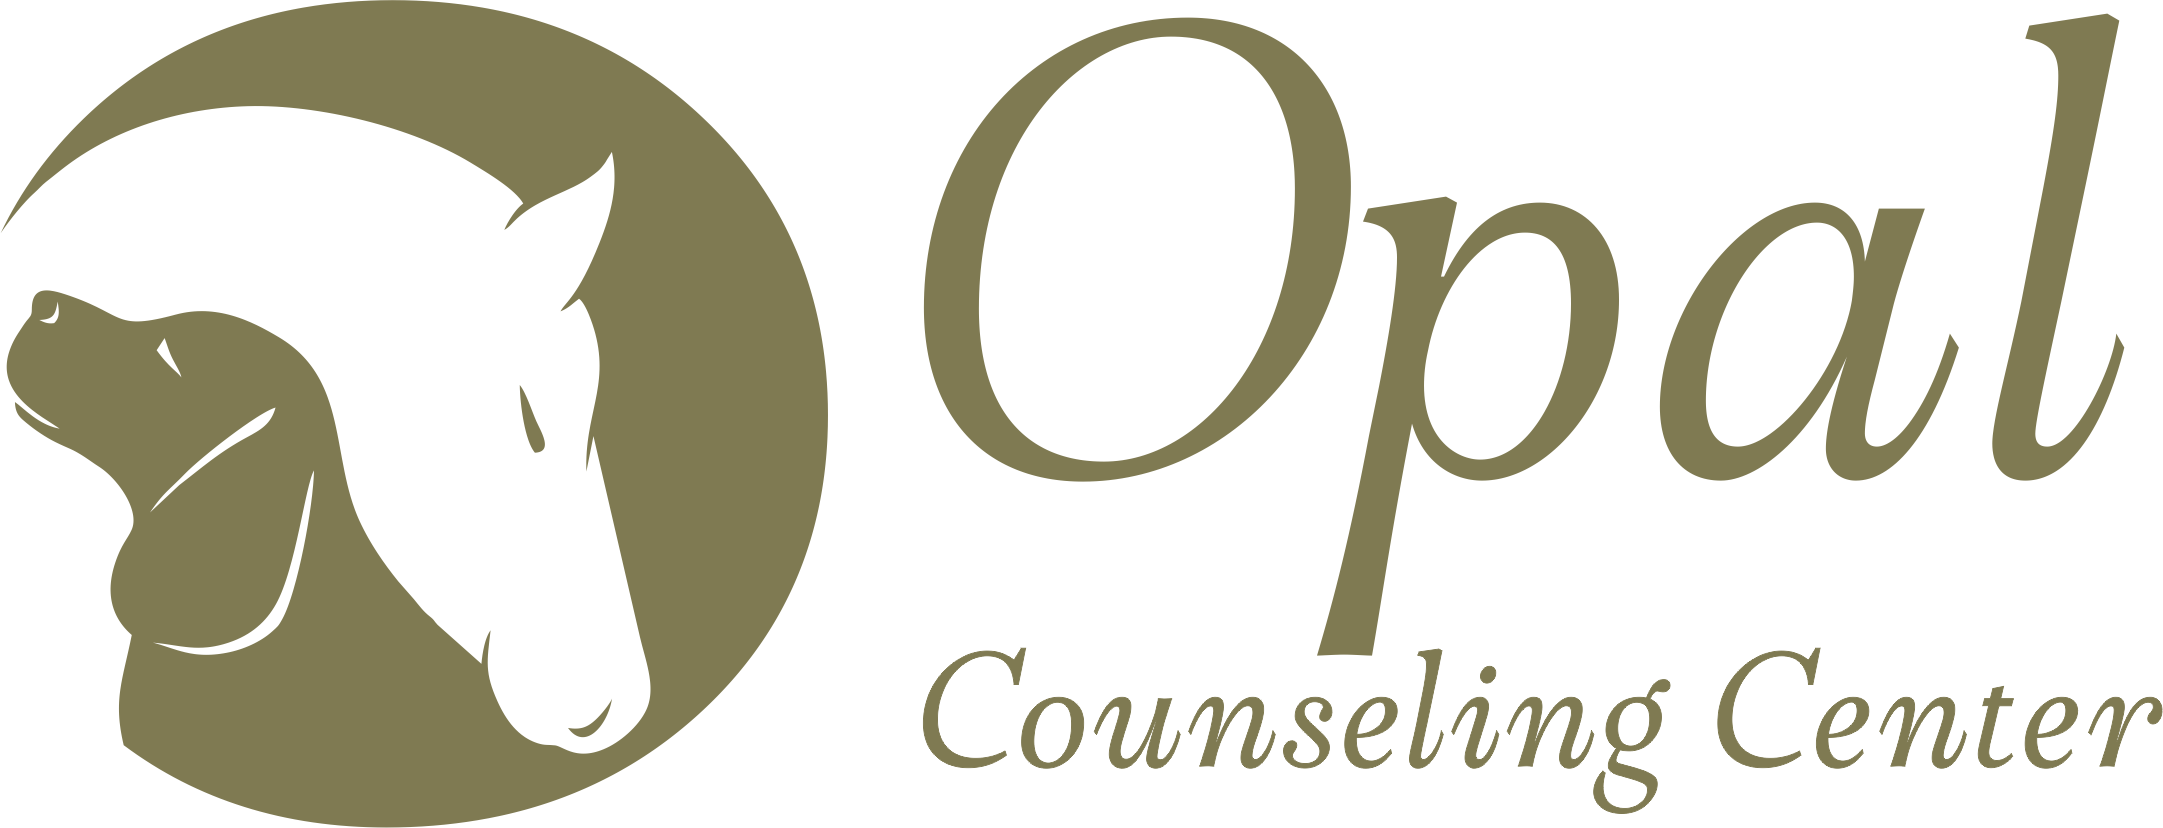 Opal Counseling Center